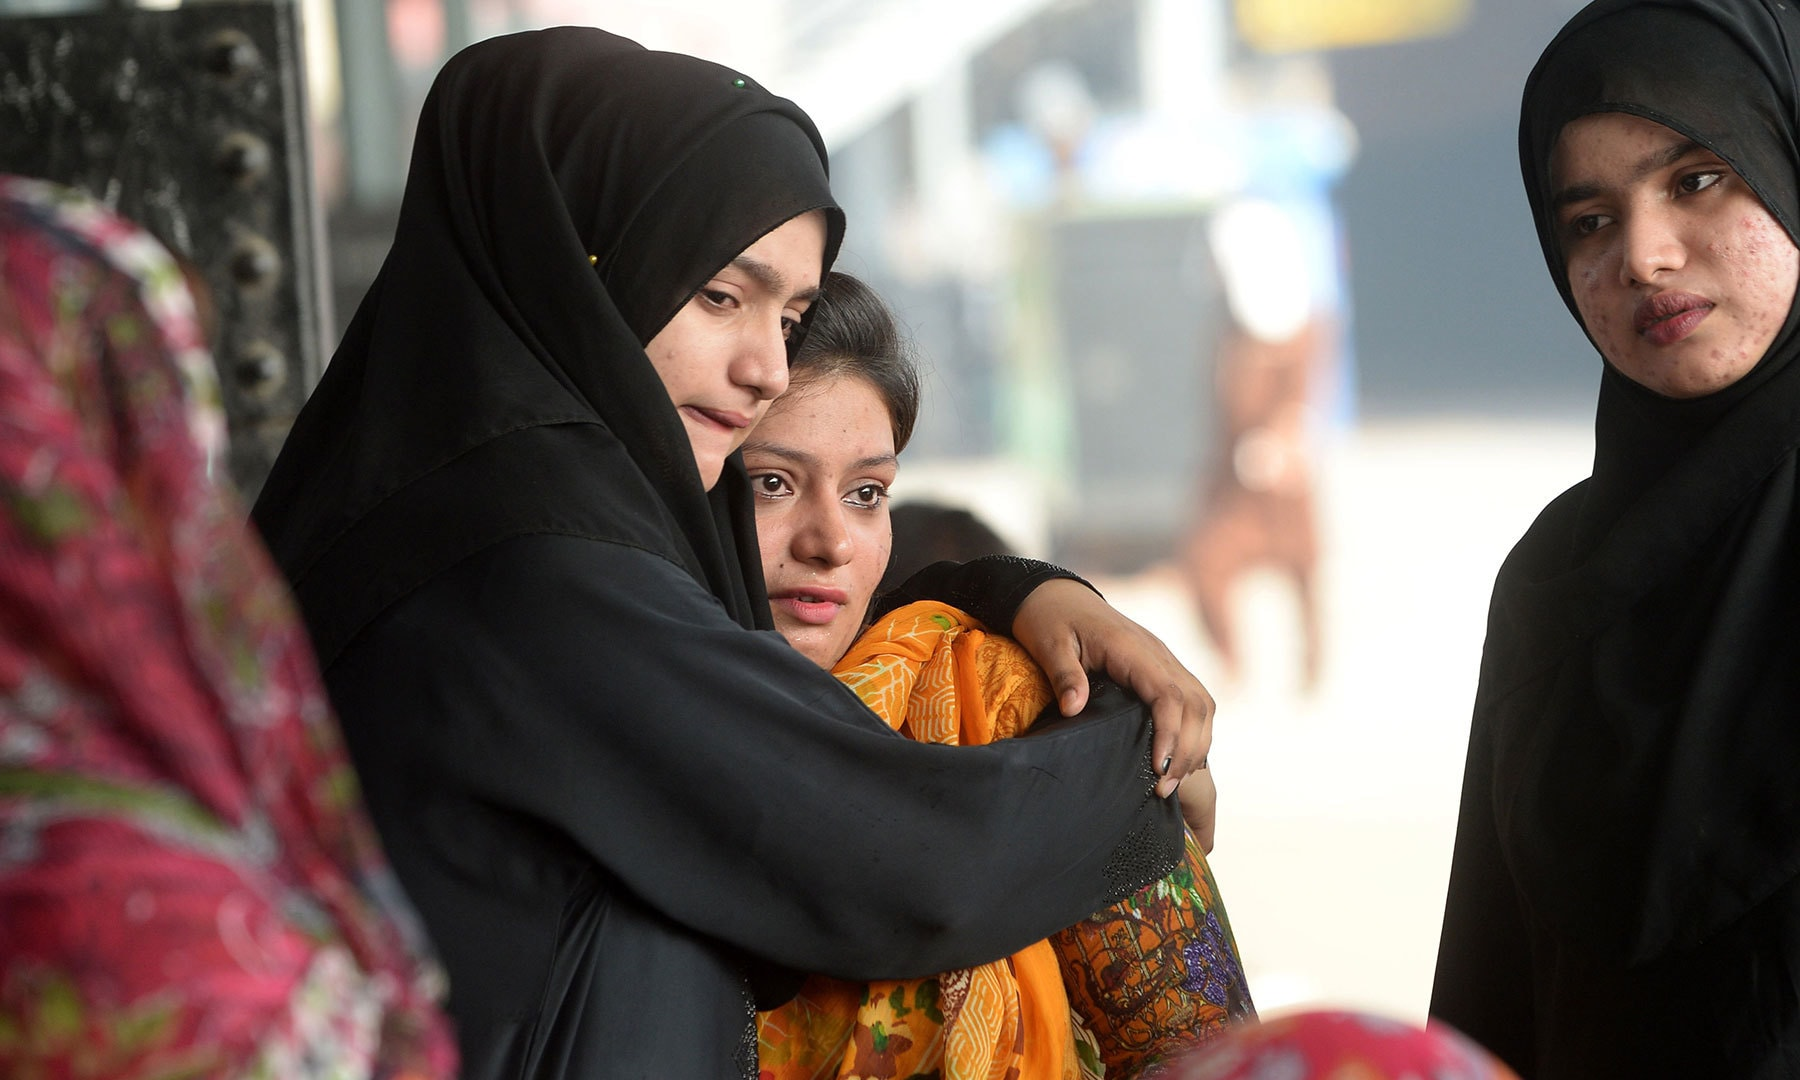 A Pakistani woman (L) embraces her Indian relative (C) ahead of her departure to India via the Samjhota Express train, also called the Friendship Express that runs between Delhi and Attari in India and Lahore in Pakistan, at the railway station in Lahore on August 8, 2019. — AFP